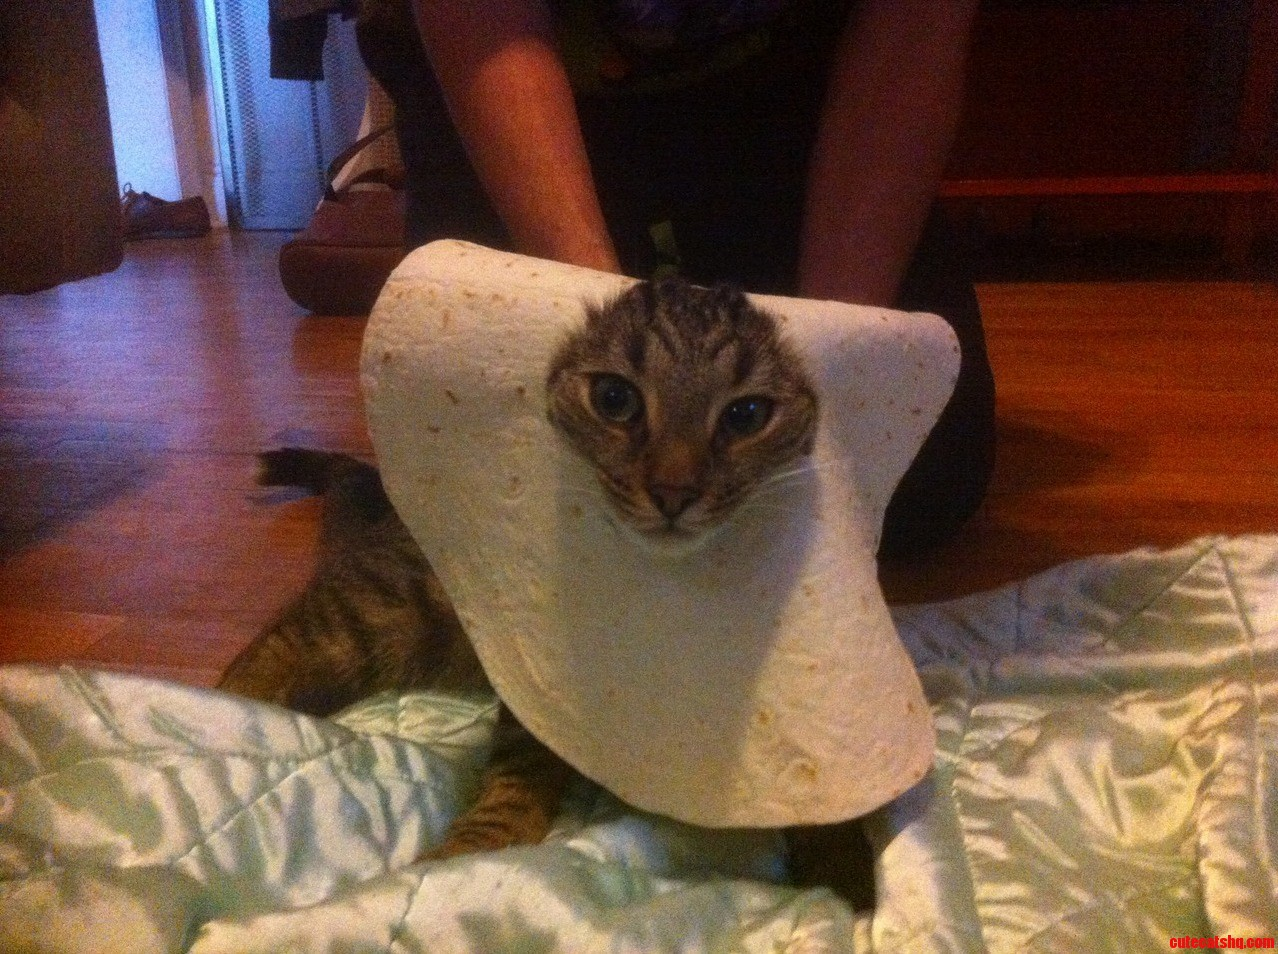 The Mexican Cousin Of Breadcat